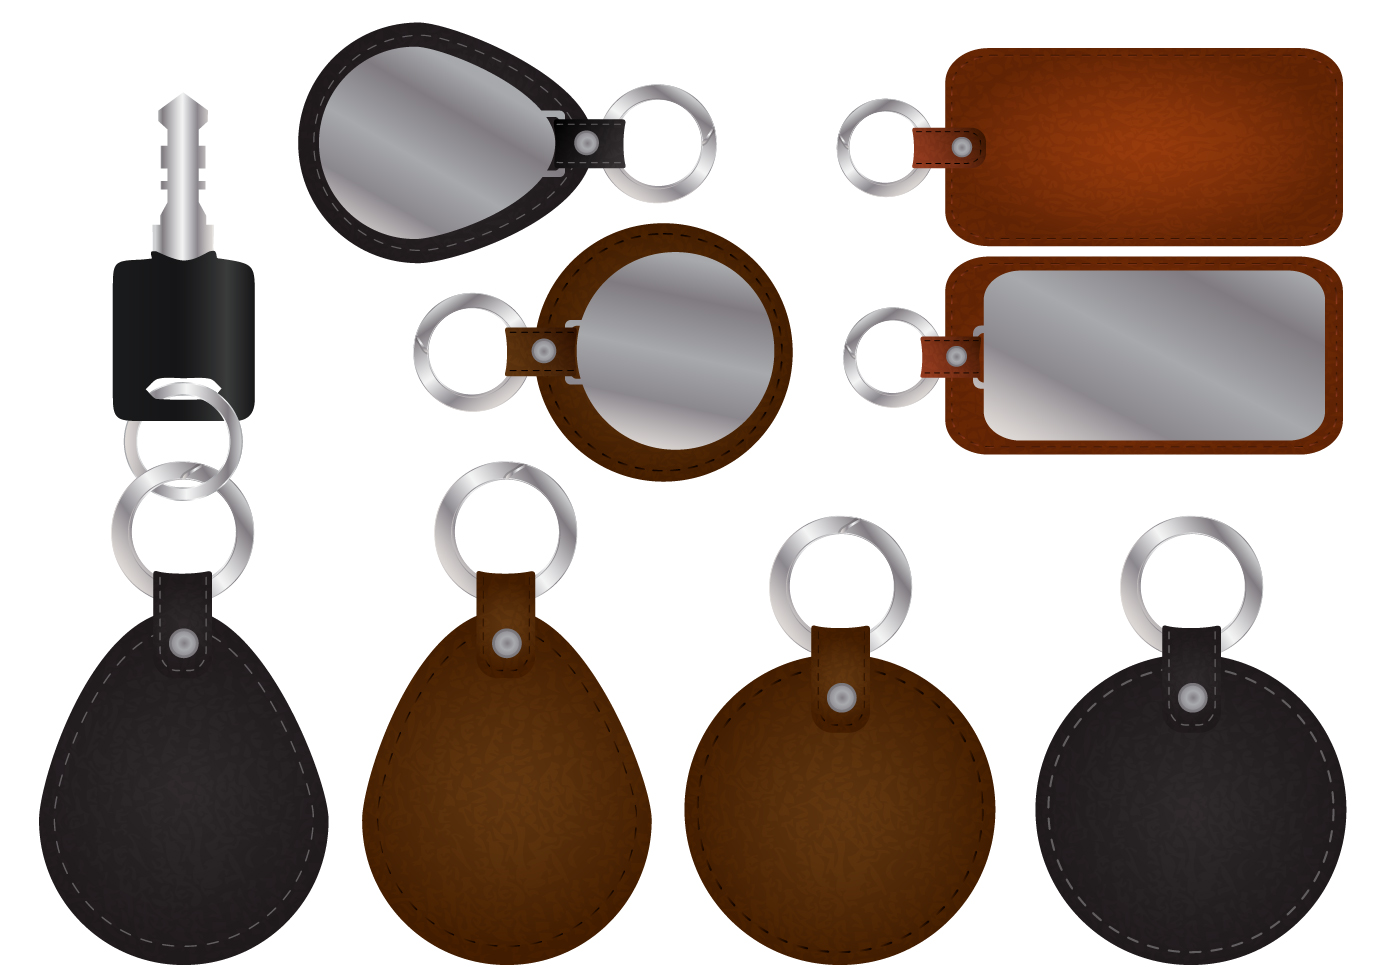 Circle Acrylic Keychain Svg Files Free – 108+ SVG PNG EPS DXF in Zip File